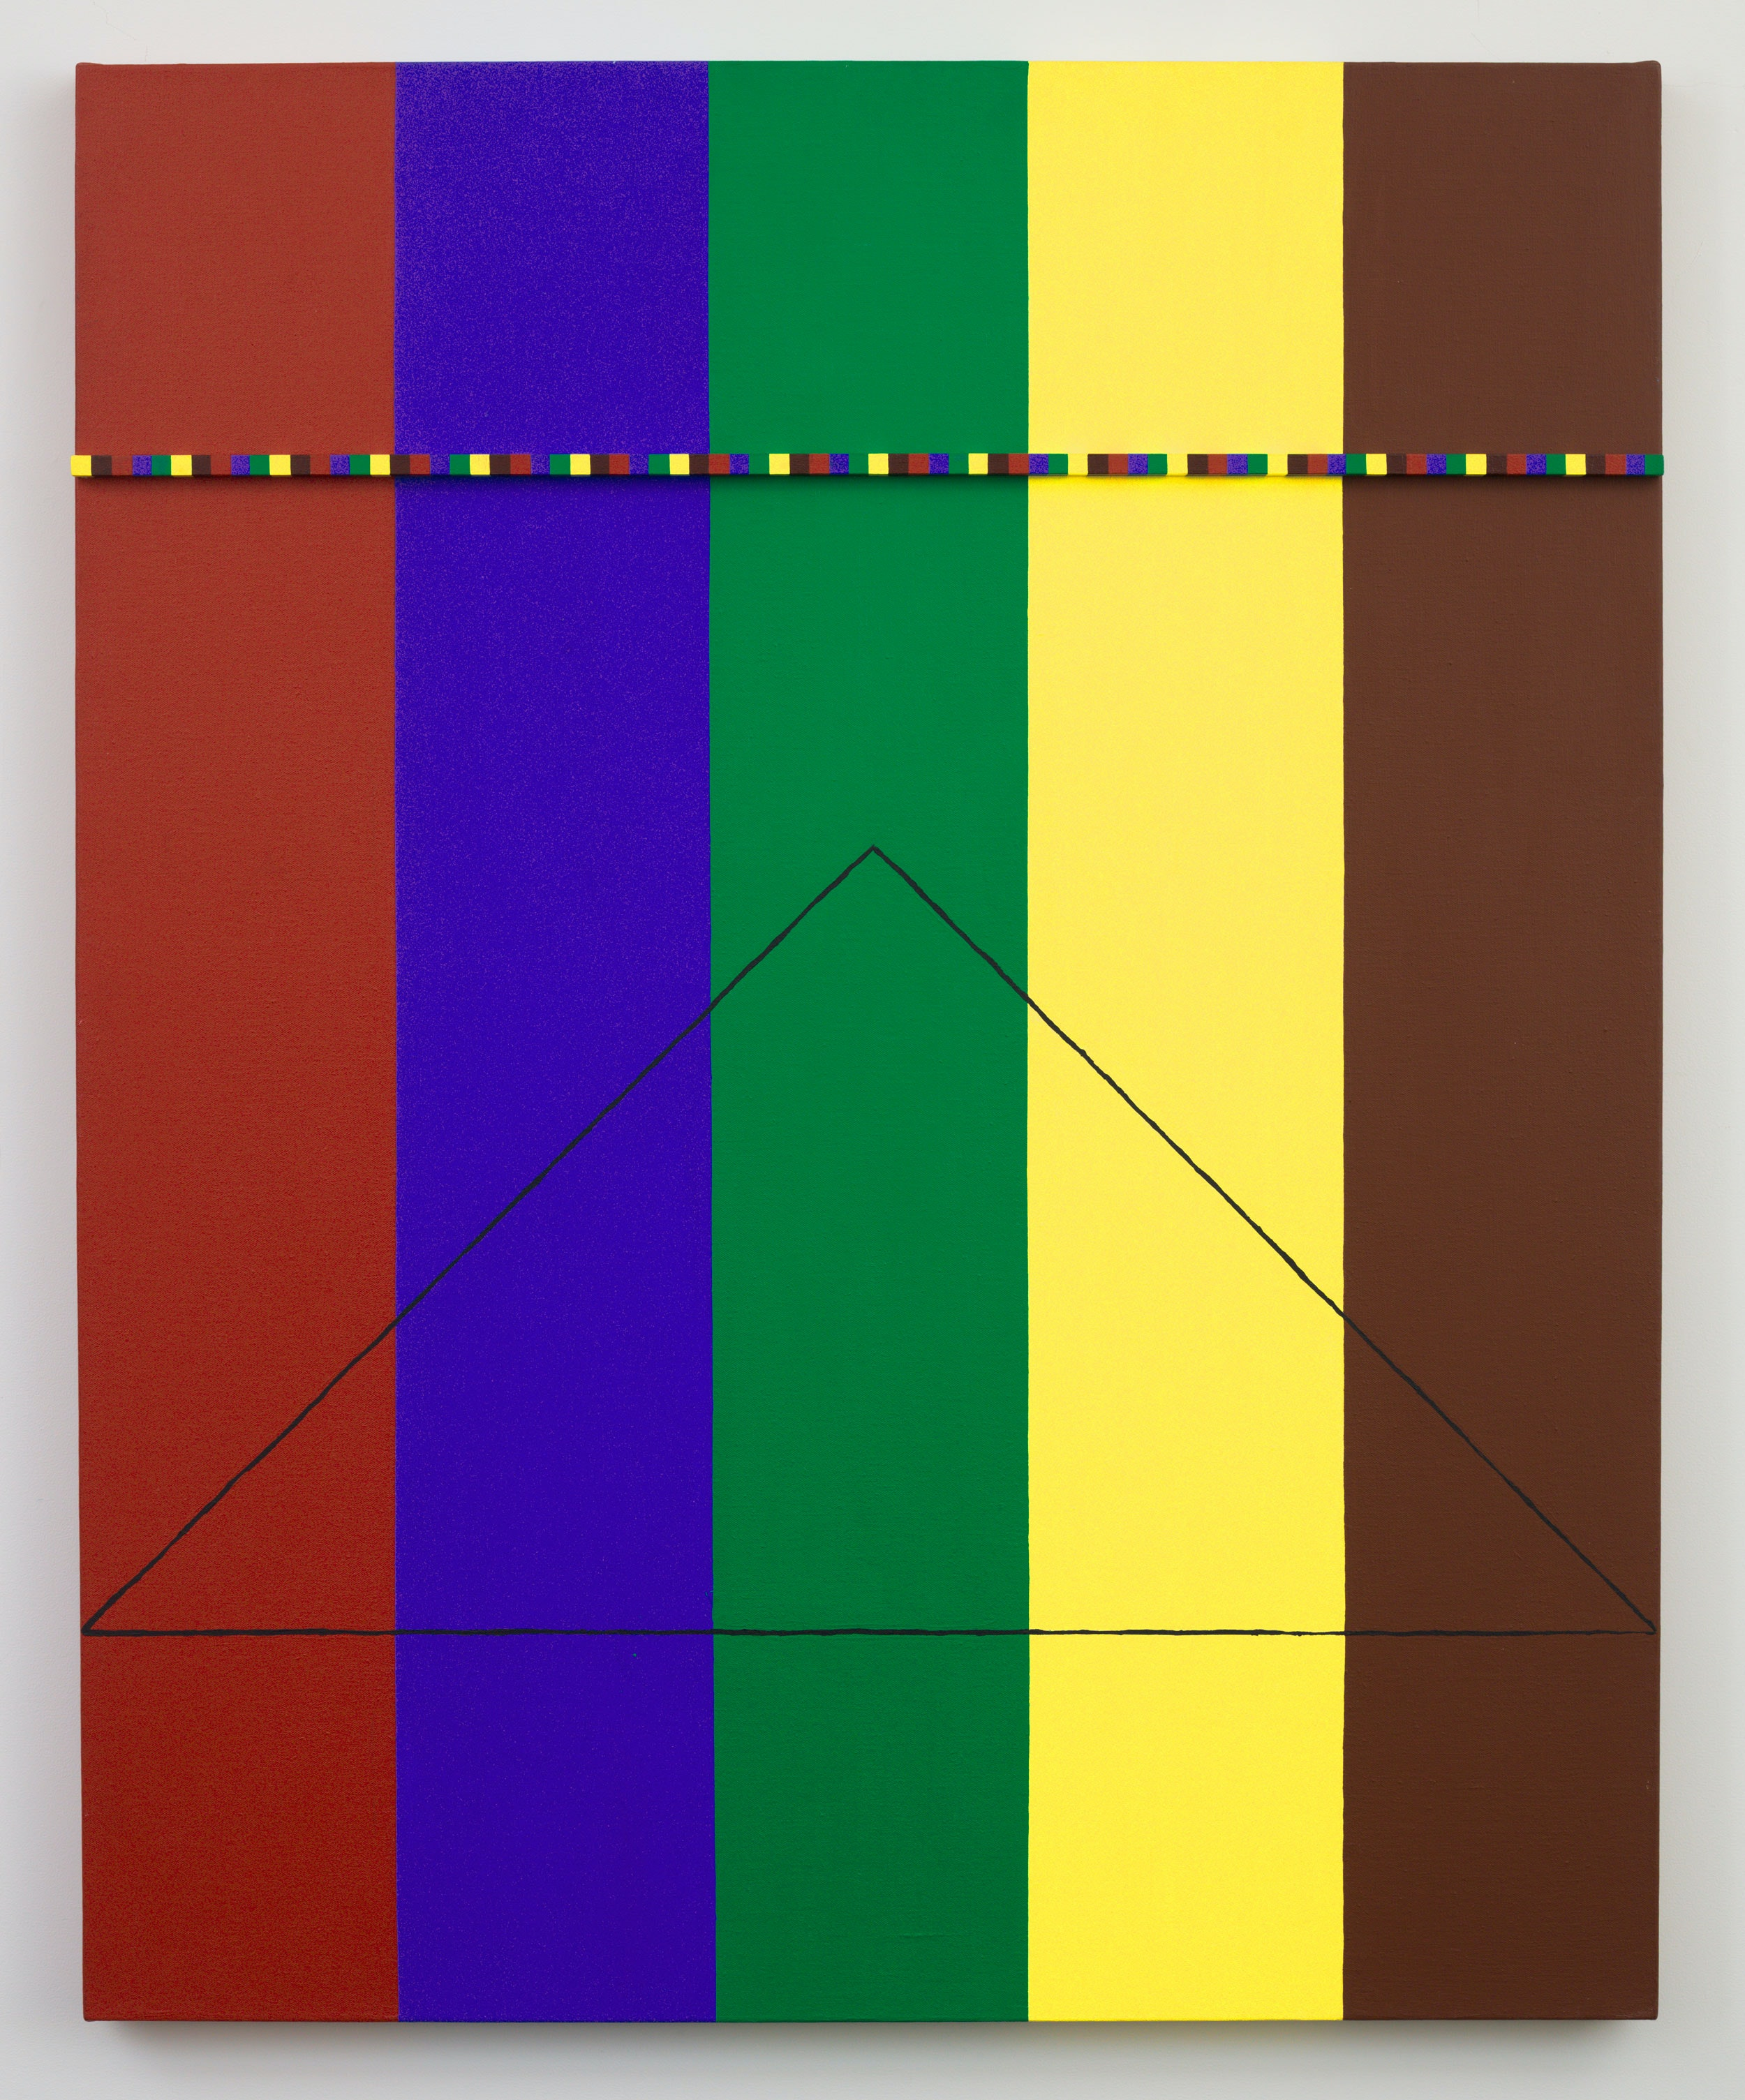 Regina Bogat, <em>The Phoenix and the Mountain #9</em>, 1980. Acrylic, wood, rope on canvas, 50 x 40 inches. Courtesy of Zürcher Gallery, NY / Paris.